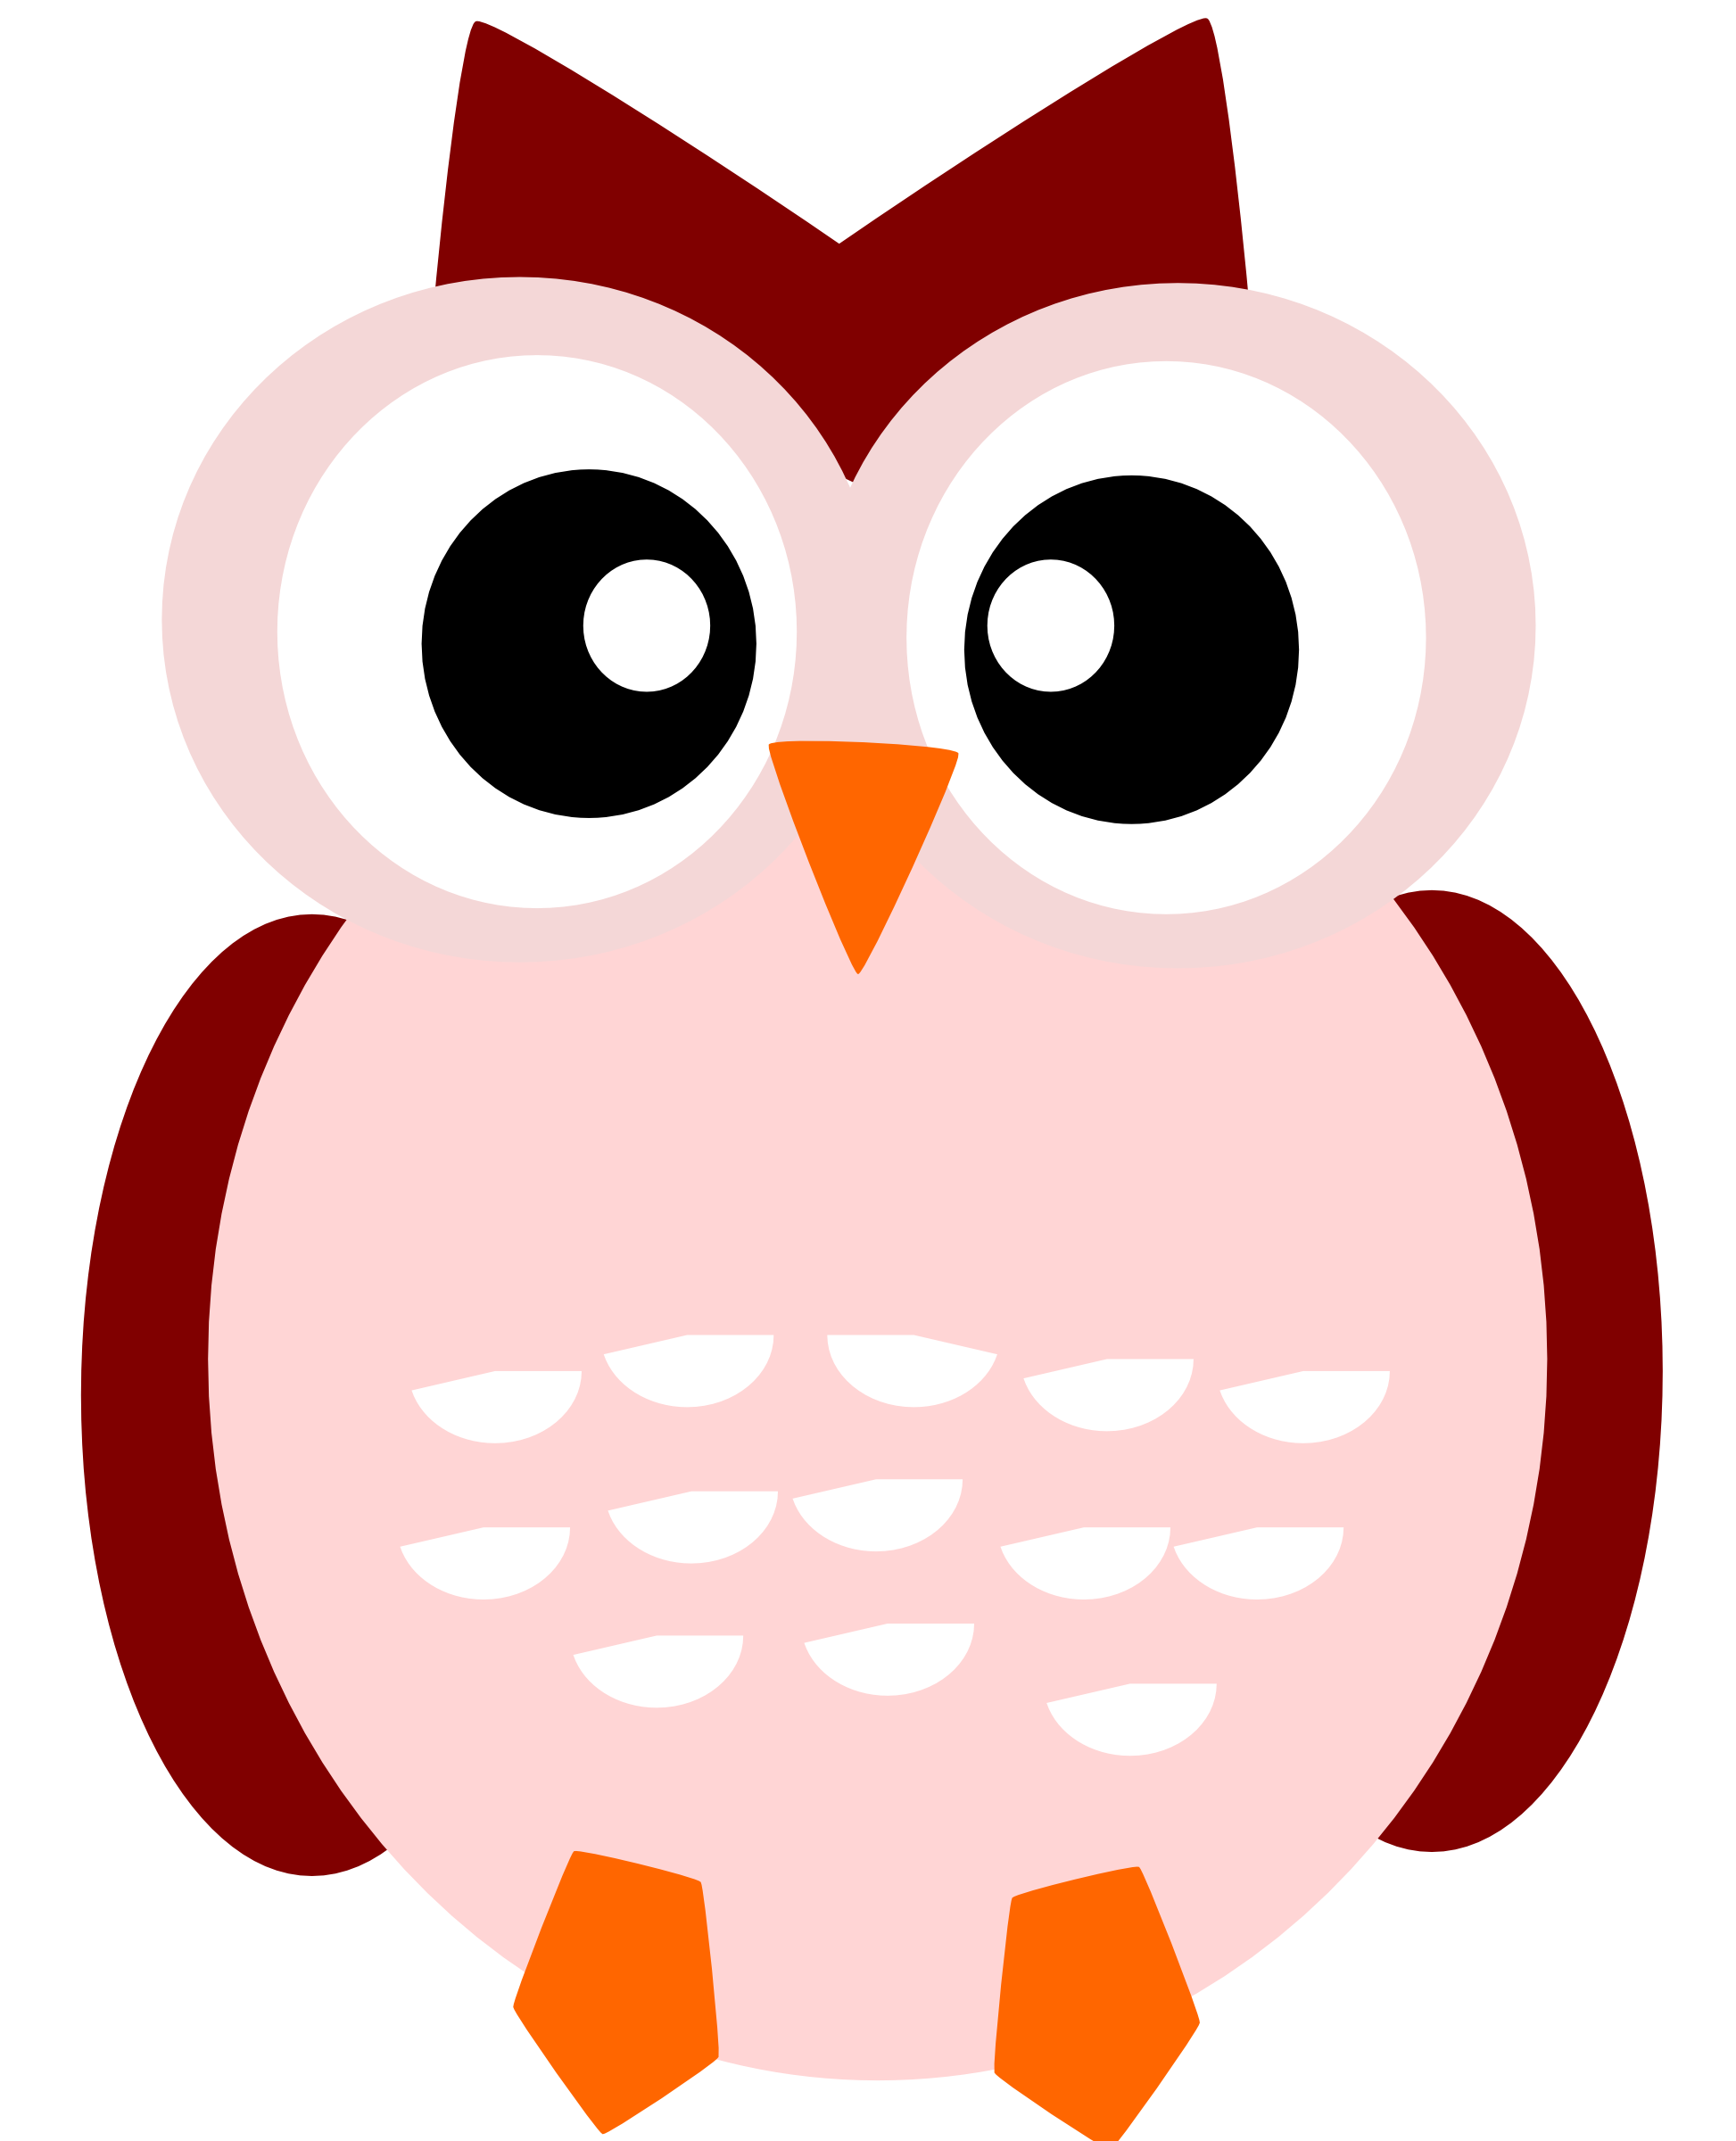 owl clip art clipart panda free clipart images clip art owl in a tree Red and Blue in a Tree Owls Clip Art